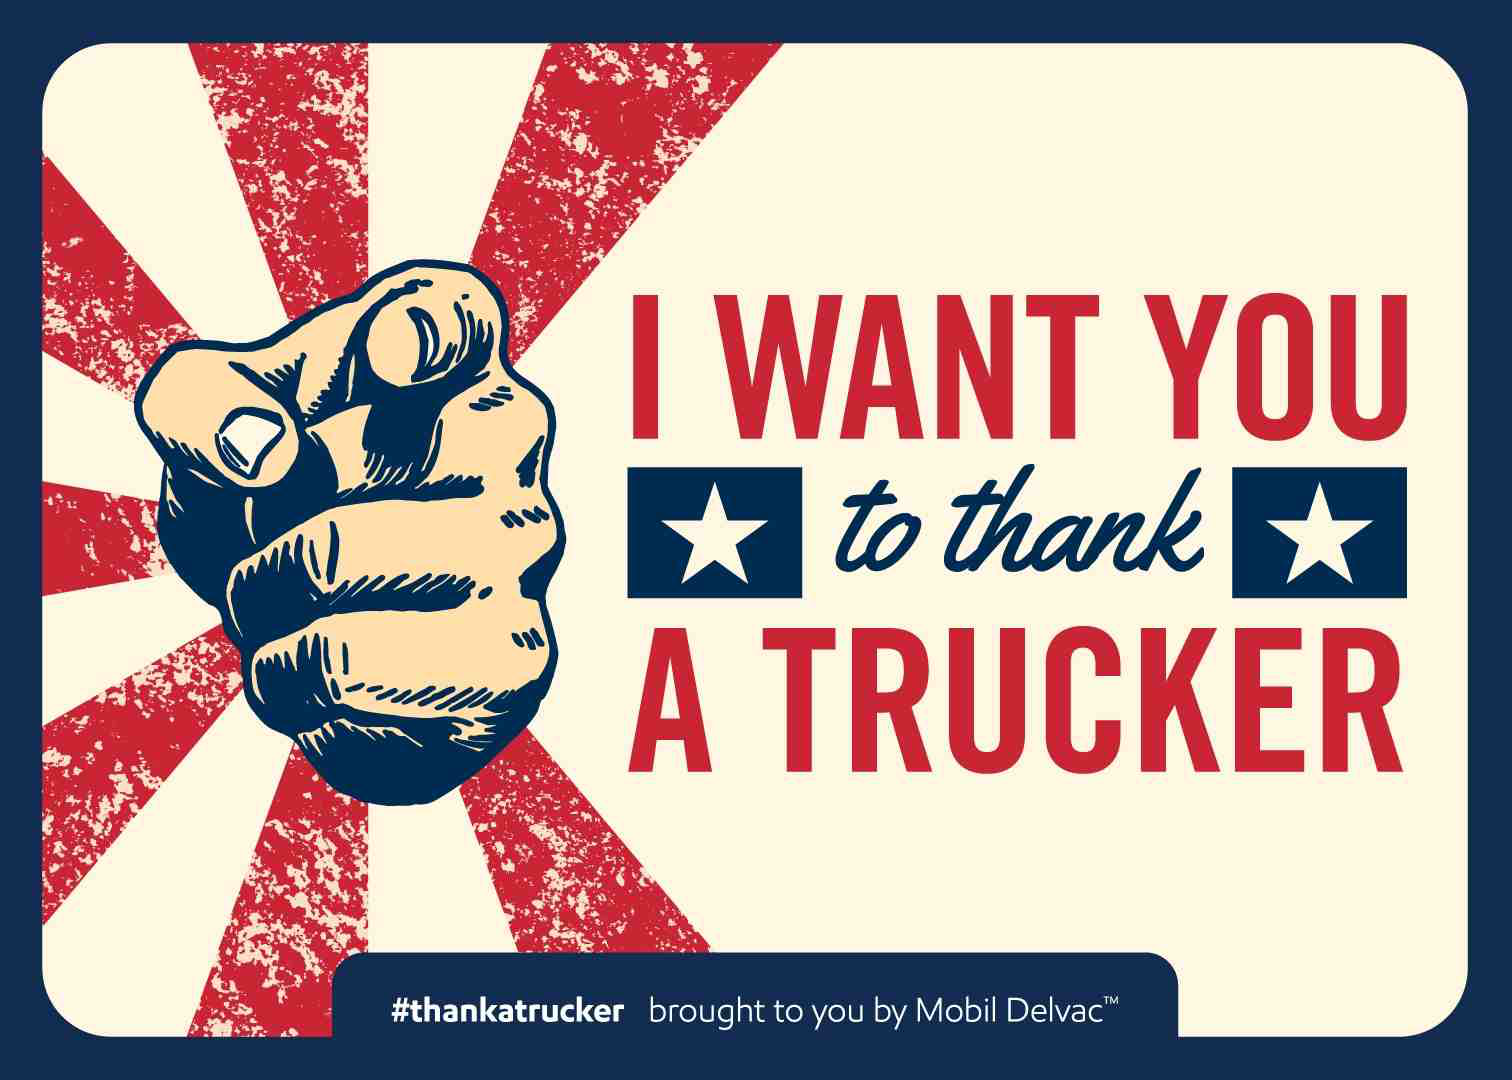 This is one of the postcards Mobil Delvac designed to thank drivers.